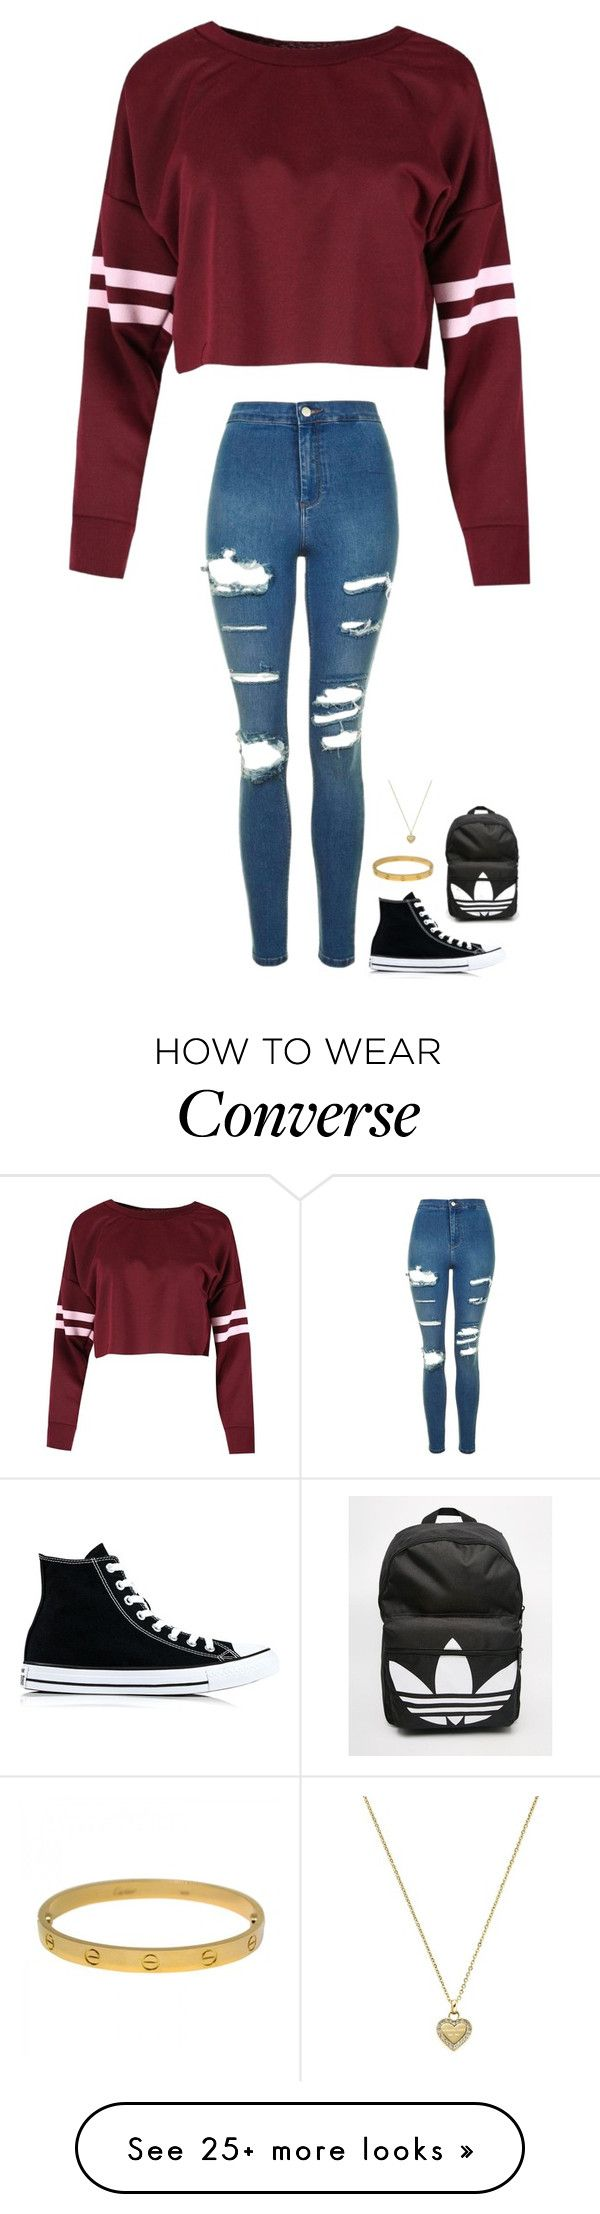 """Untitled #373"" by jasmine2001 on Polyvore featuring Topshop, Converse, adidas, Cartier and Michael Kors"